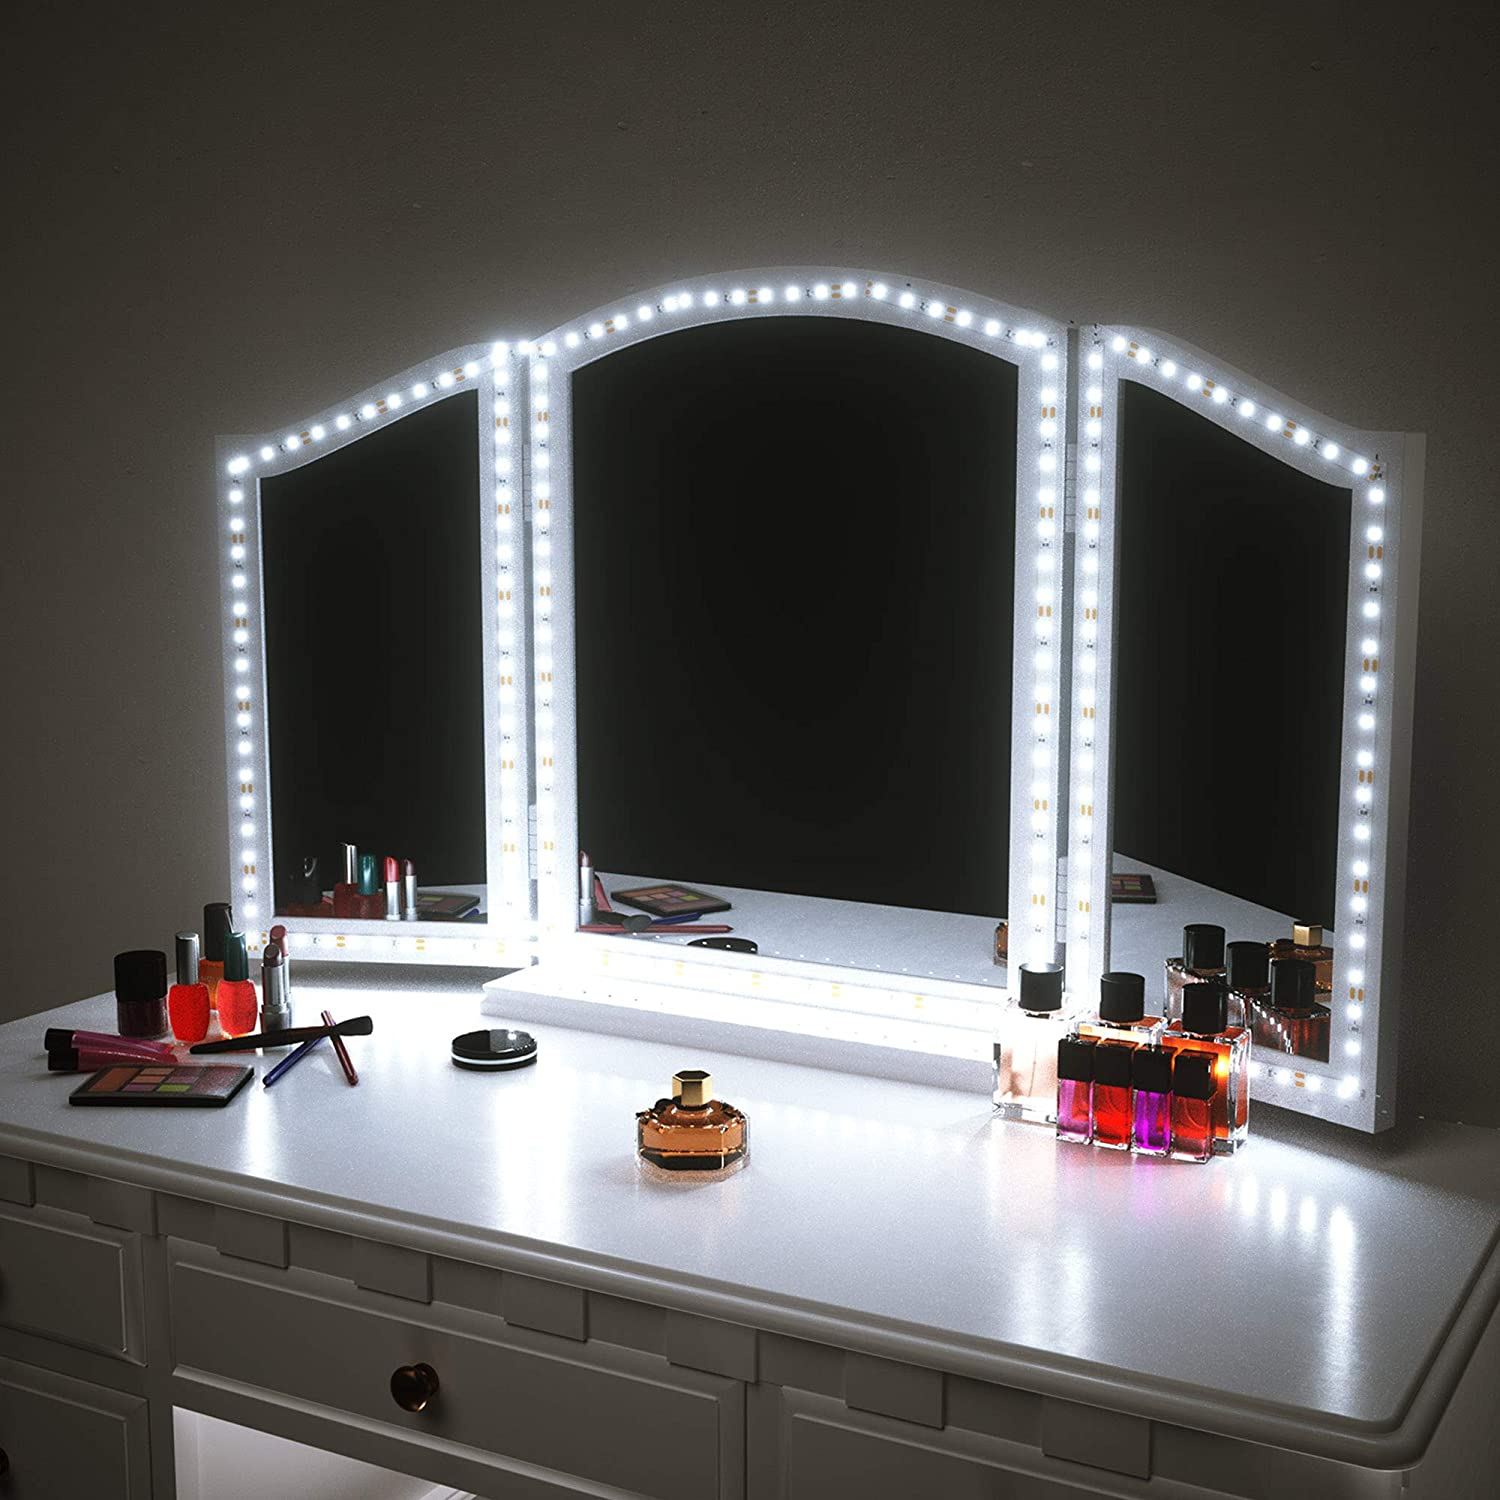 Amazon Com Led Vanity Mirror Lights For Makeup Dressing Table Vanity Set 13ft Flexible Led Light Strip Kit 6000k Daylight White With Dimmer And Power Supply Diy Mirror Mirror Not Included Home Improvement